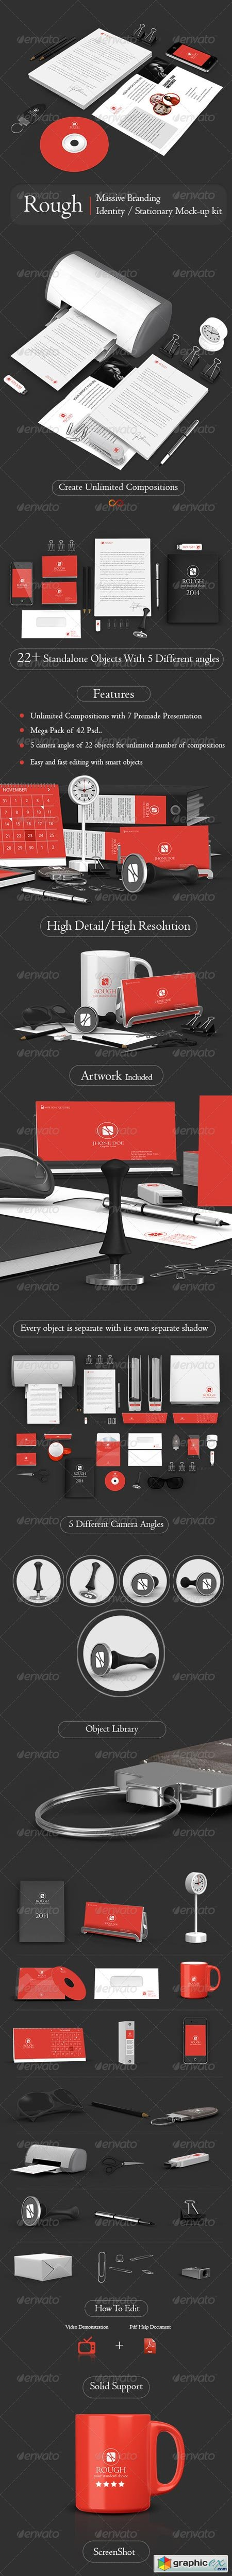 Rough Massive Branding Stationary Mockup Kit 6122007